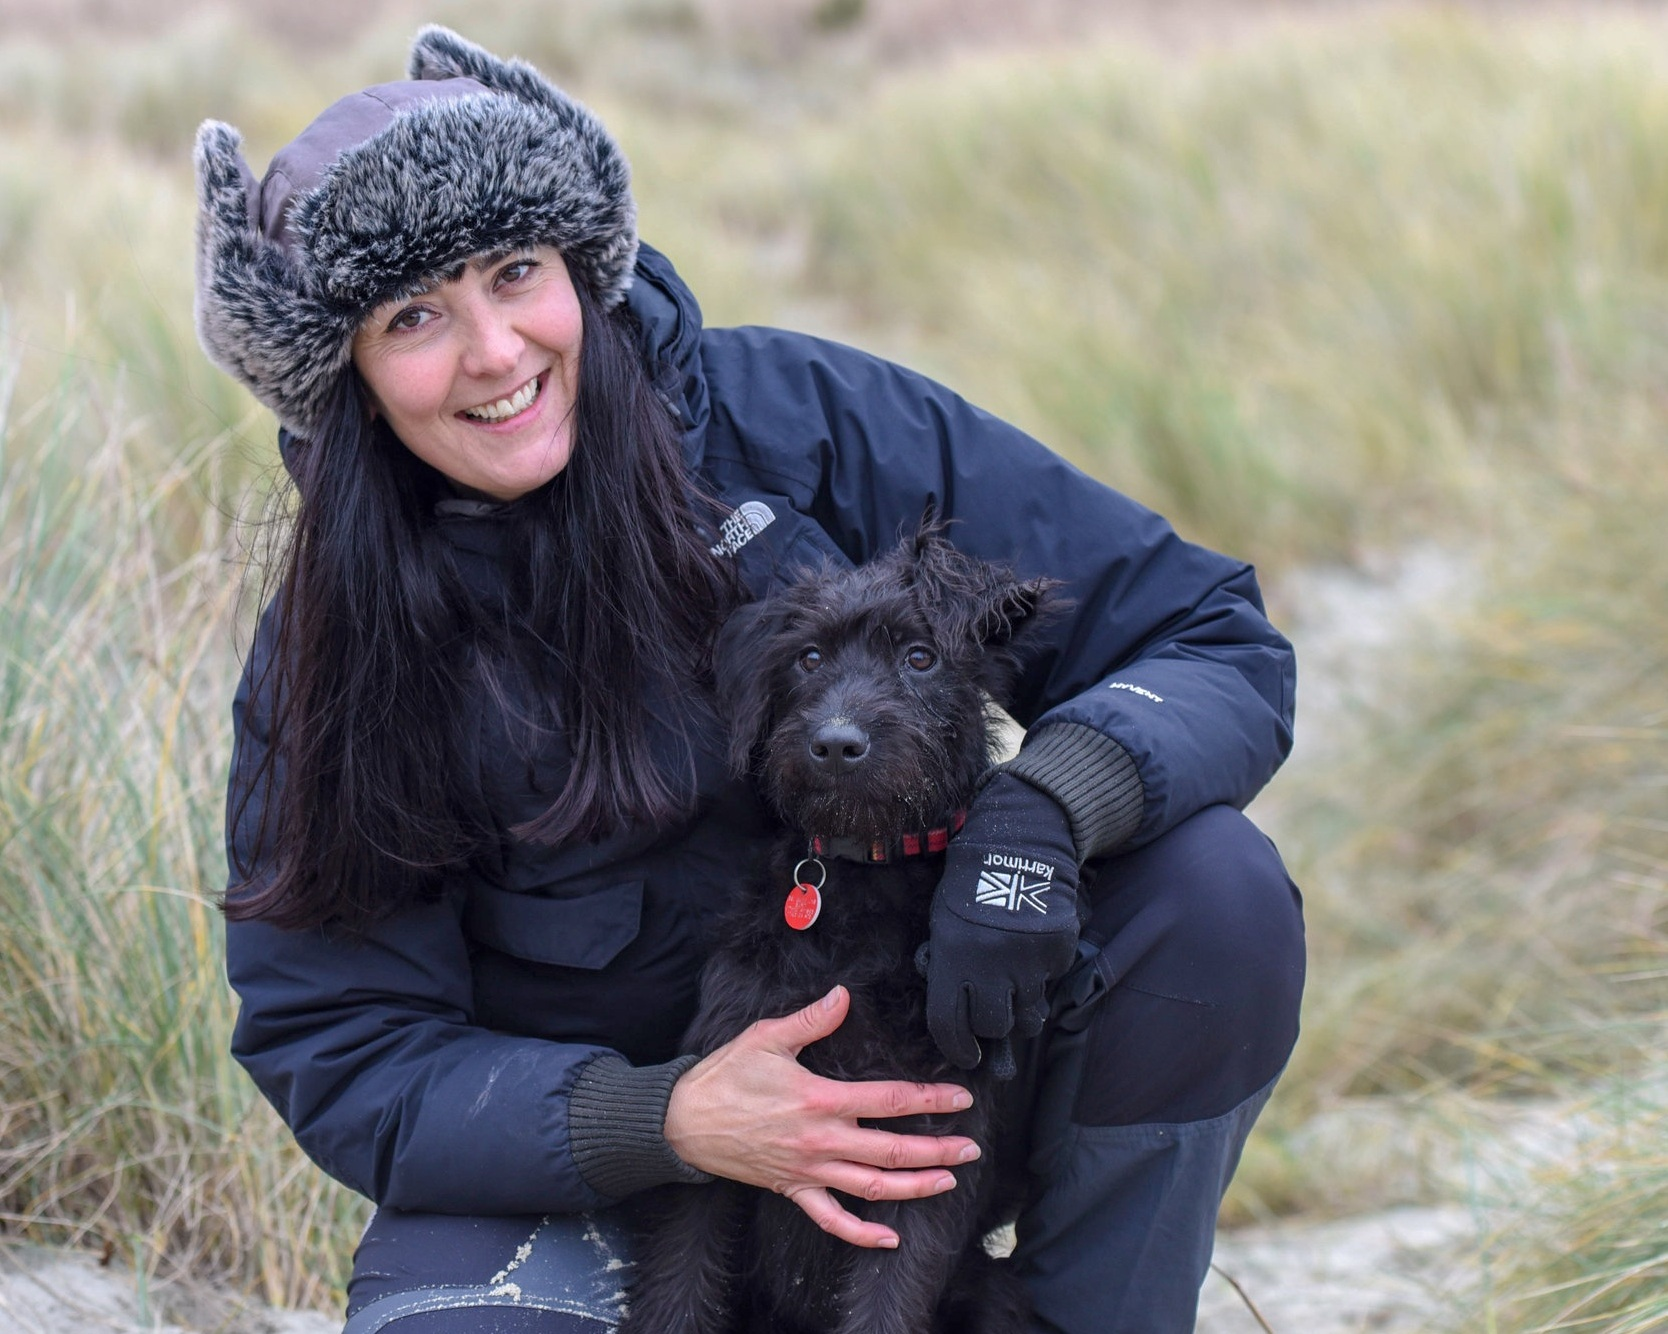 Angela Ross   After what was a part time job dog walking in 2014, I took the plunge in 2016 to commit myself full time to doing what I enjoy best. Walking your dogs!  I can honestly say its the best decision I have ever made. It truly is the best job in the world.  We always had animals in our family growing up but my dream one day was to have a dog of my own. My partner and I finally got a puppy beginning of October 2018, after I kept asking for 18 years. (My perseverance paid off!)  We also have two cats and a third cat who tends to visit on occasion.  I am a firm believer in positive reward based training and have wanted to work with animals since I was a child.   Completed Fear & Aggression Course    Trained Animal First Aider